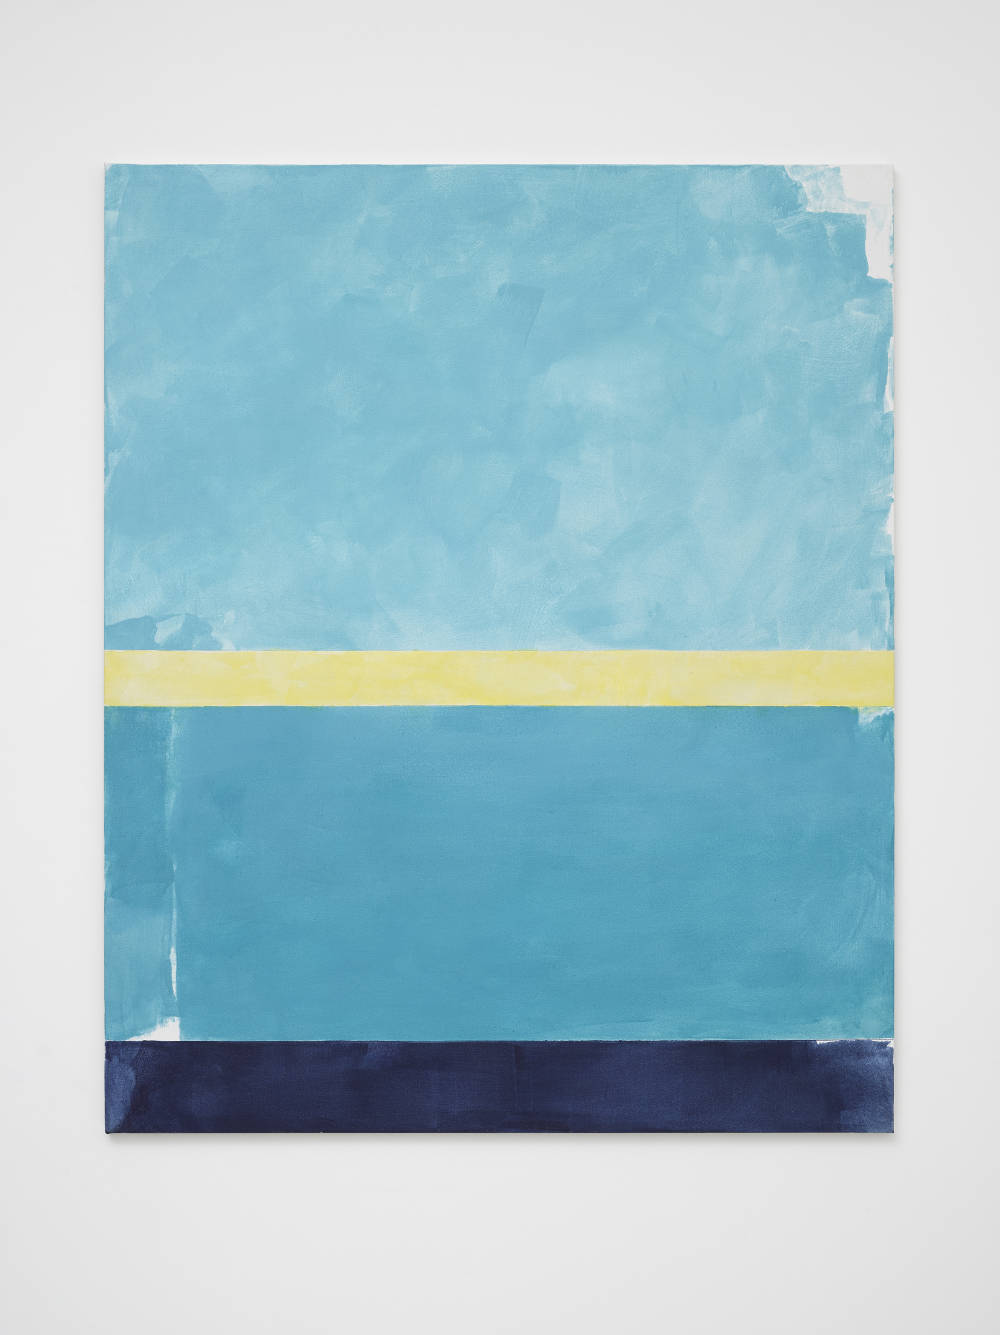 Peter Joseph, Turquoise, Yellow and Ultramarine, 2016. Acrylic on cotton duck 54 x 44 inches (137.2 x 111.8 cm) © Peter Joseph; Courtesy Lisson Gallery. Photo by Jack Hems